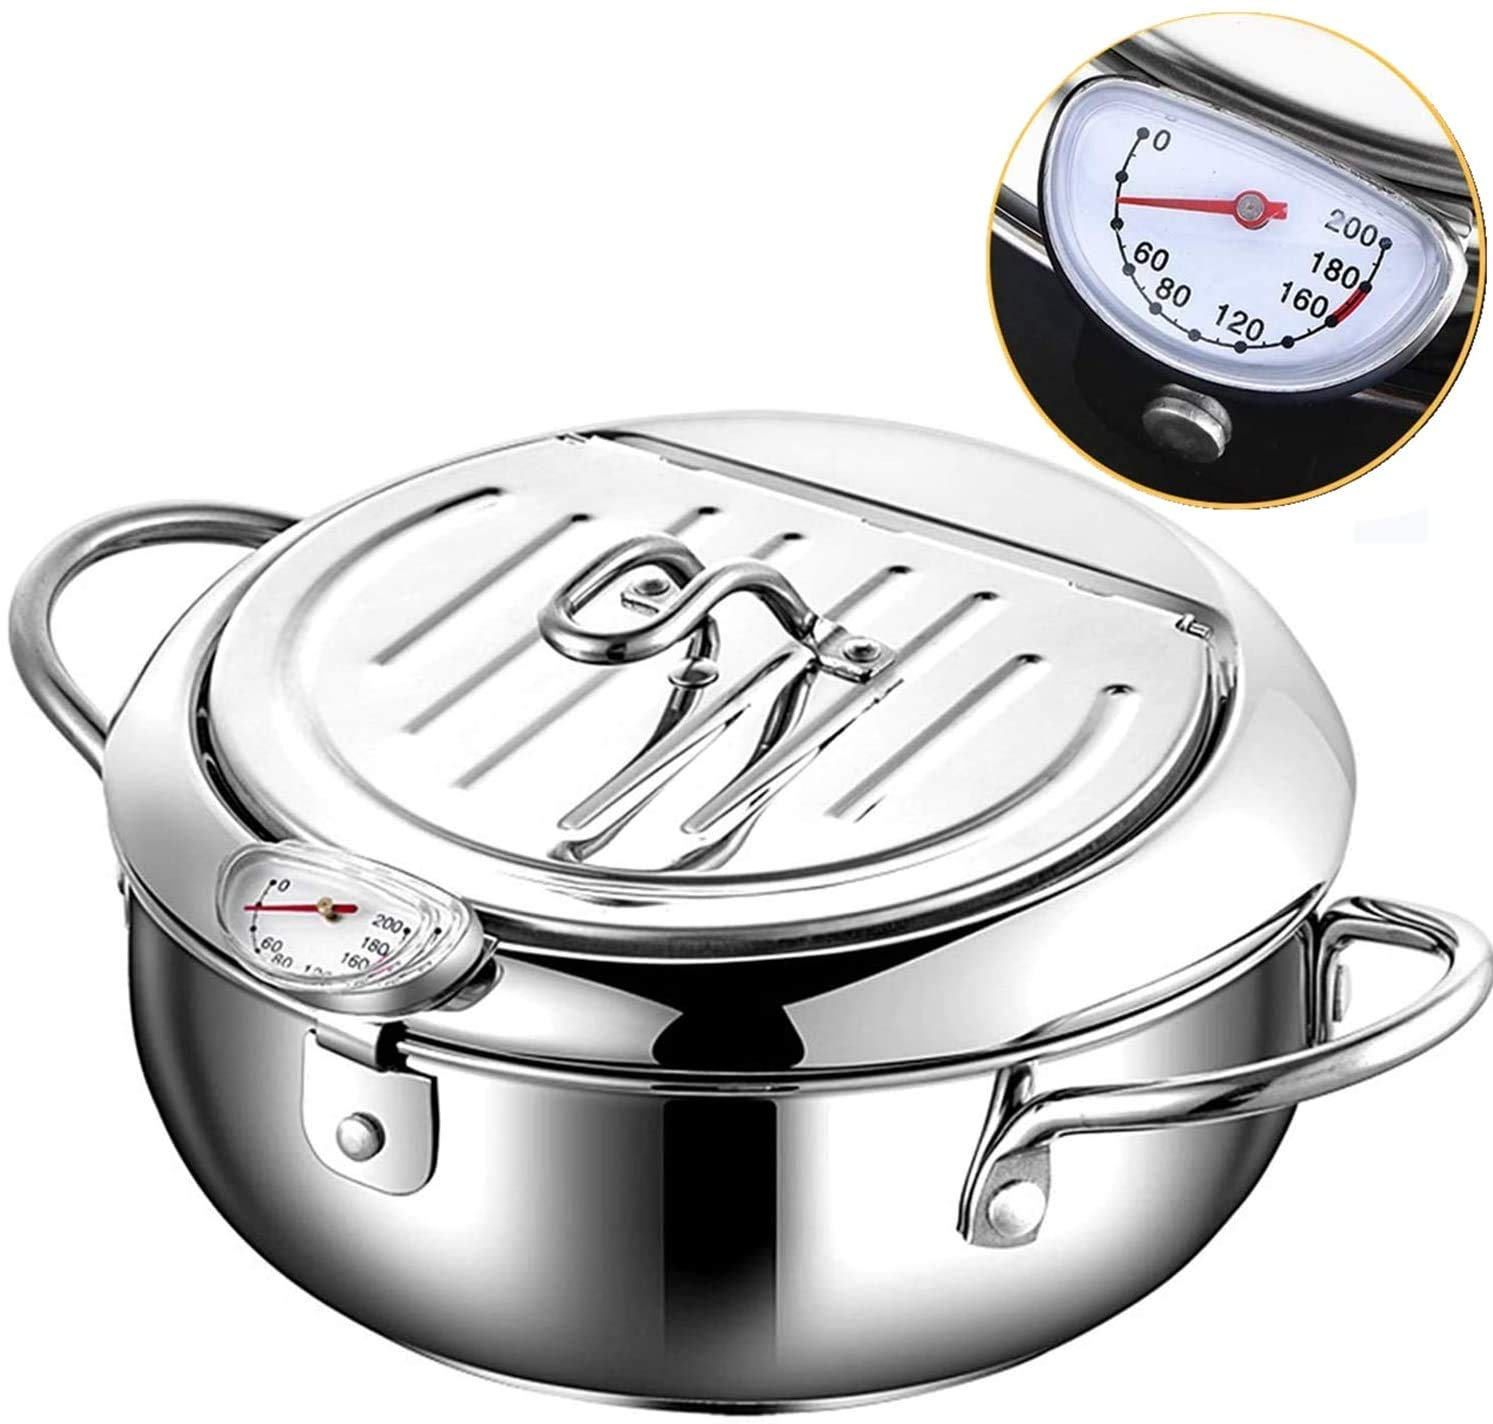 "Tempura Deep Fryer Pot Thermometer, Japanese Style , Stove top, Christmas gift, Oil Drip Drainer Rack. Stainless Steel deep Frying Pan. French Fries Pot. 304 Stainless Steel 24CM (9.5""), 3.4L capacity."